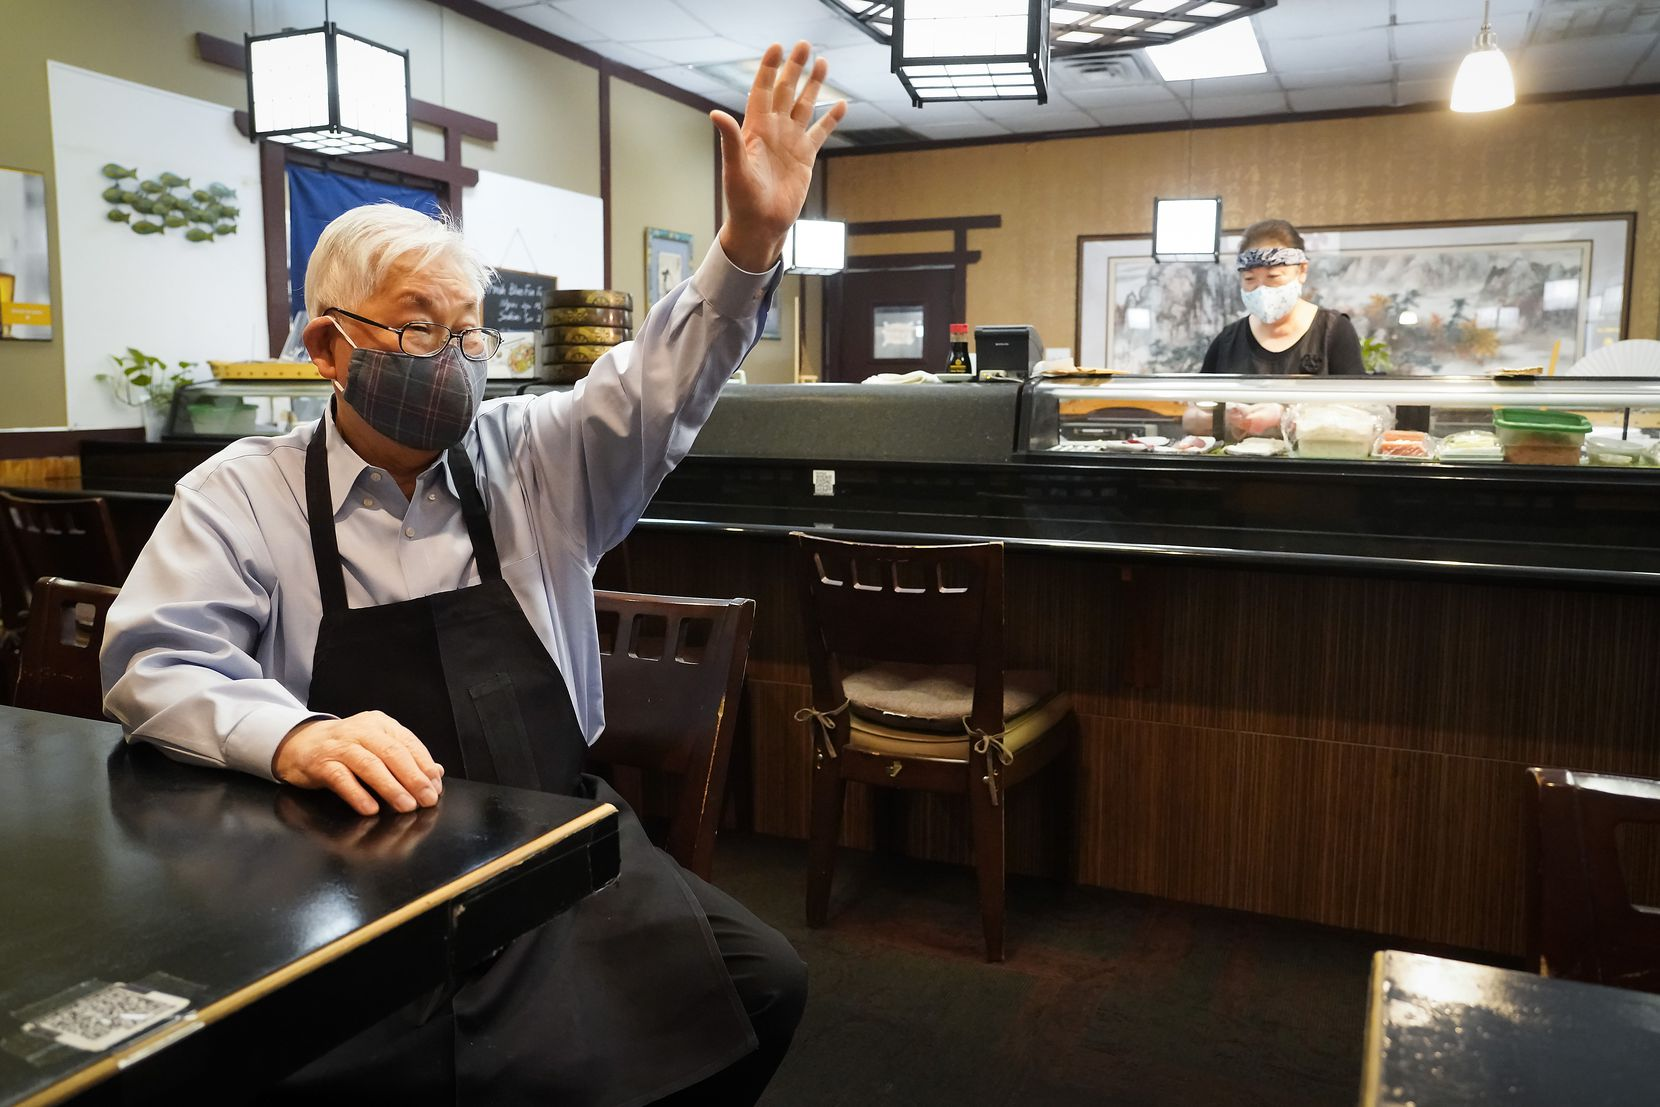 """Sushiya restaurant owner Kang Lee waved to a departing customer as Junok Kim worked the sushi bar April 15 in Dallas.  Lee's grandson had  posted a TikTok video asking people to come support his grandfather's struggling restaurant. It went viral and led to a surge in business. """"I couldn't believe it,"""" Lee said. """"People were lined up at the door!"""""""